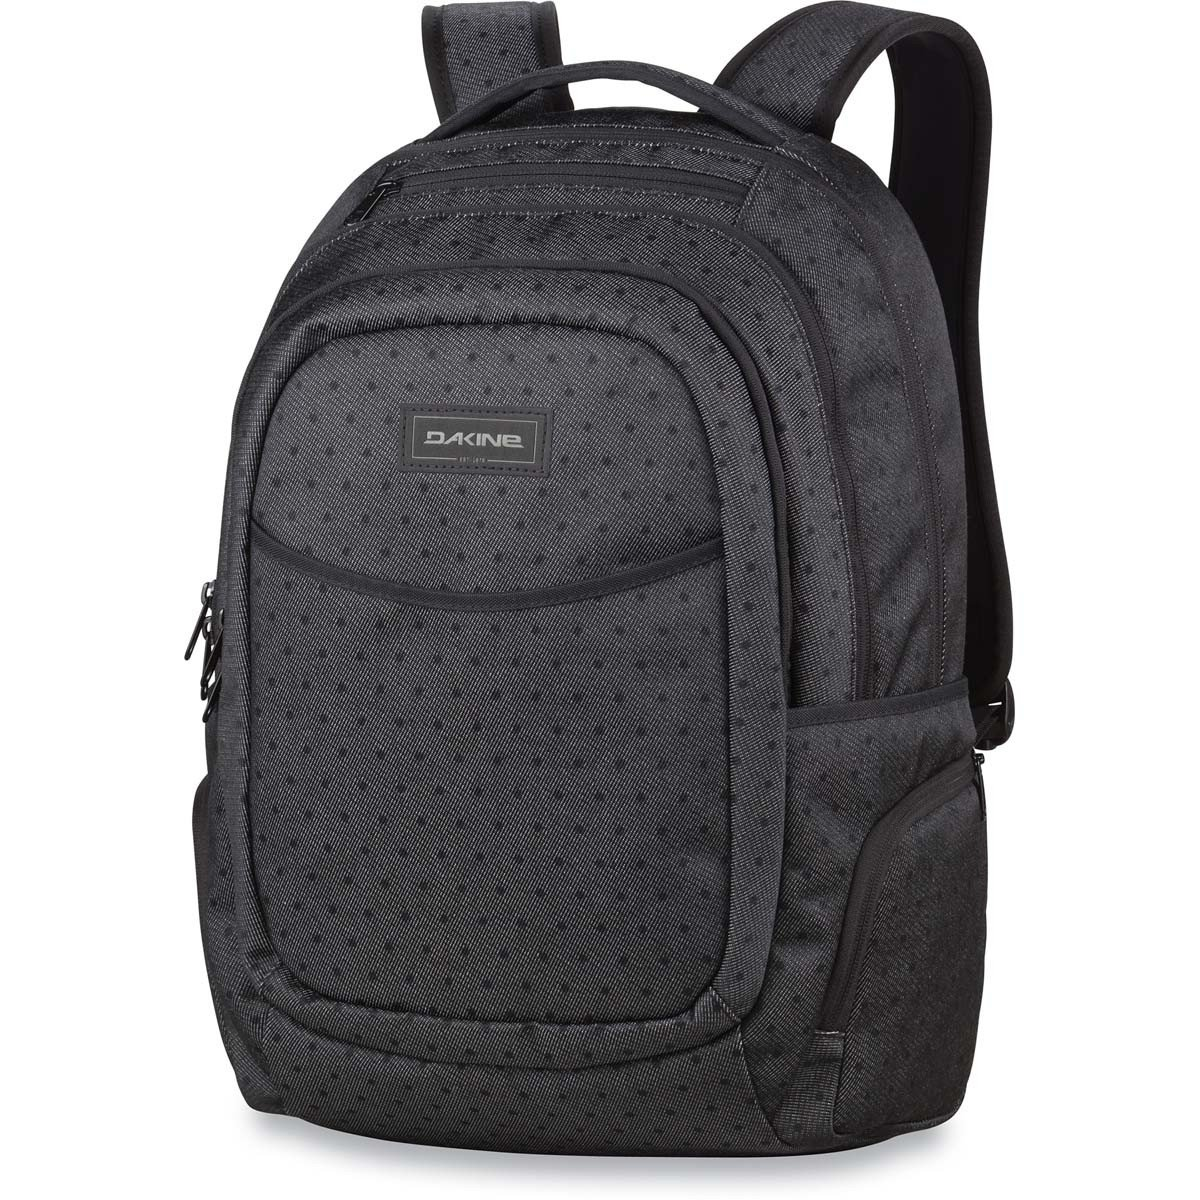 Womens Dakine Backpacks cWDda0KW